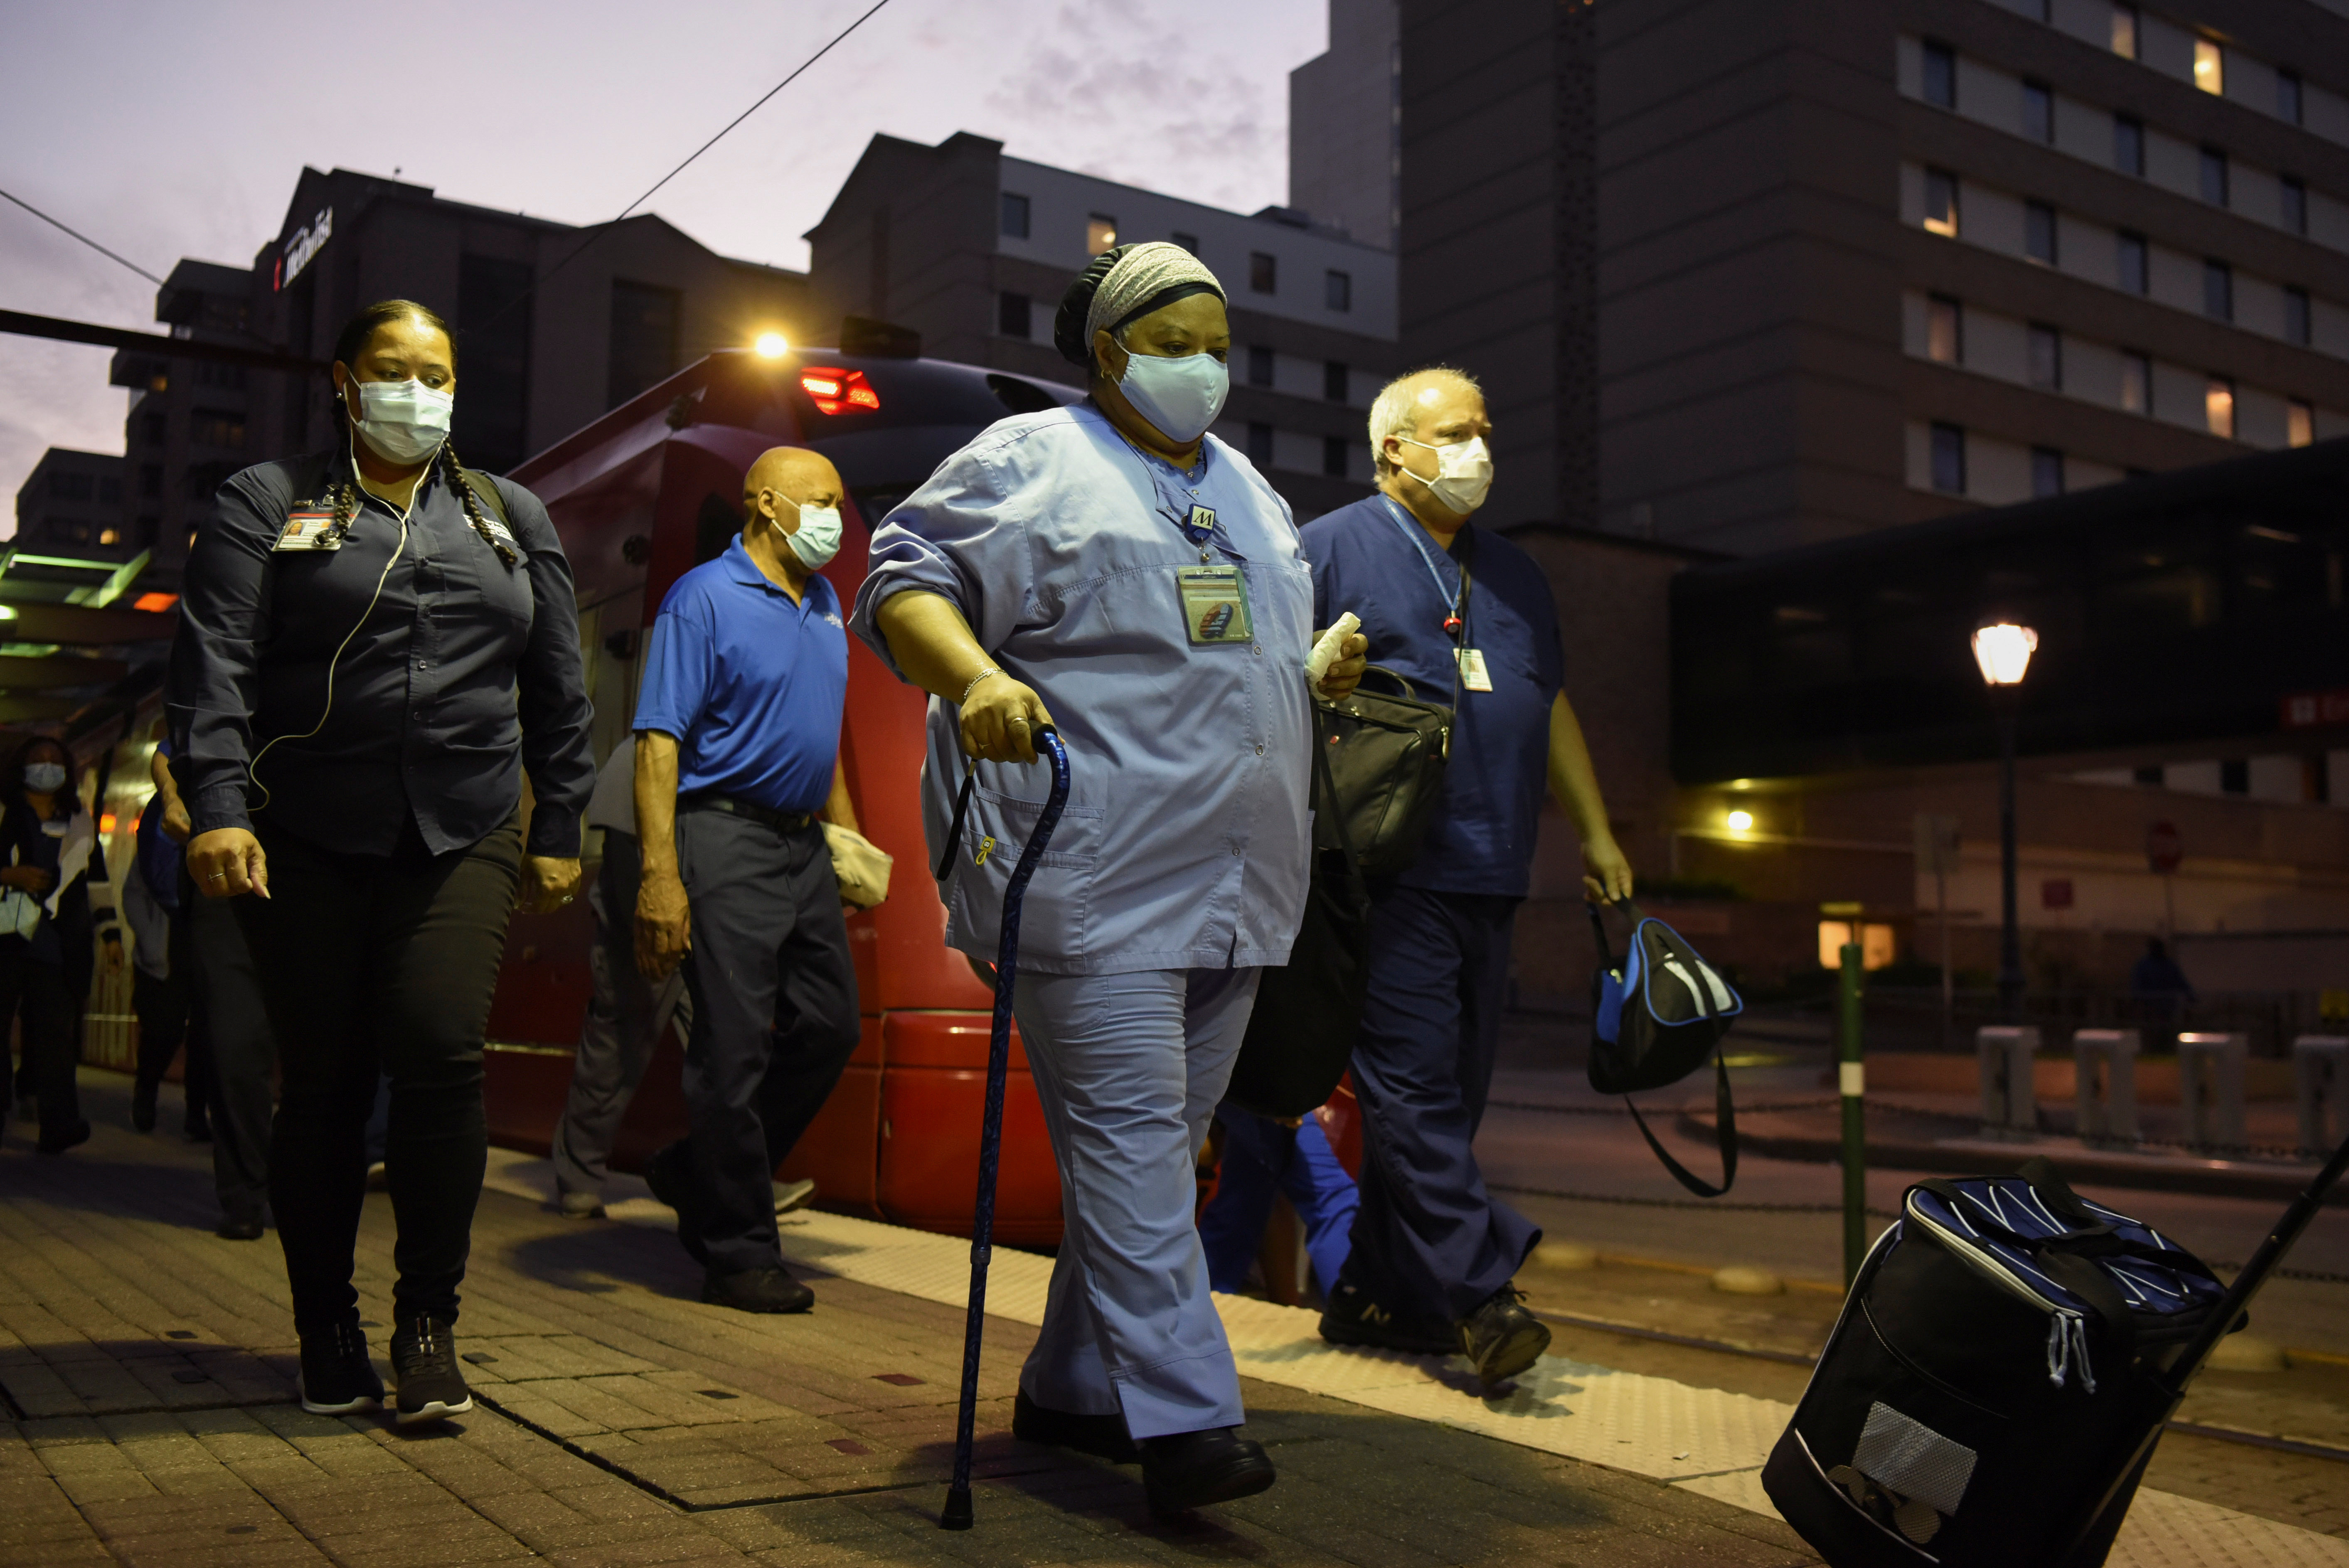 Healthcare workers walk through the Texas Medical Center during a shift change as cases of the coronavirus disease (COVID-19) spike in Houston, Texas, U.S., July 8, 2020.  REUTERS/Callaghan O'Hare - RC25PH93WYMO